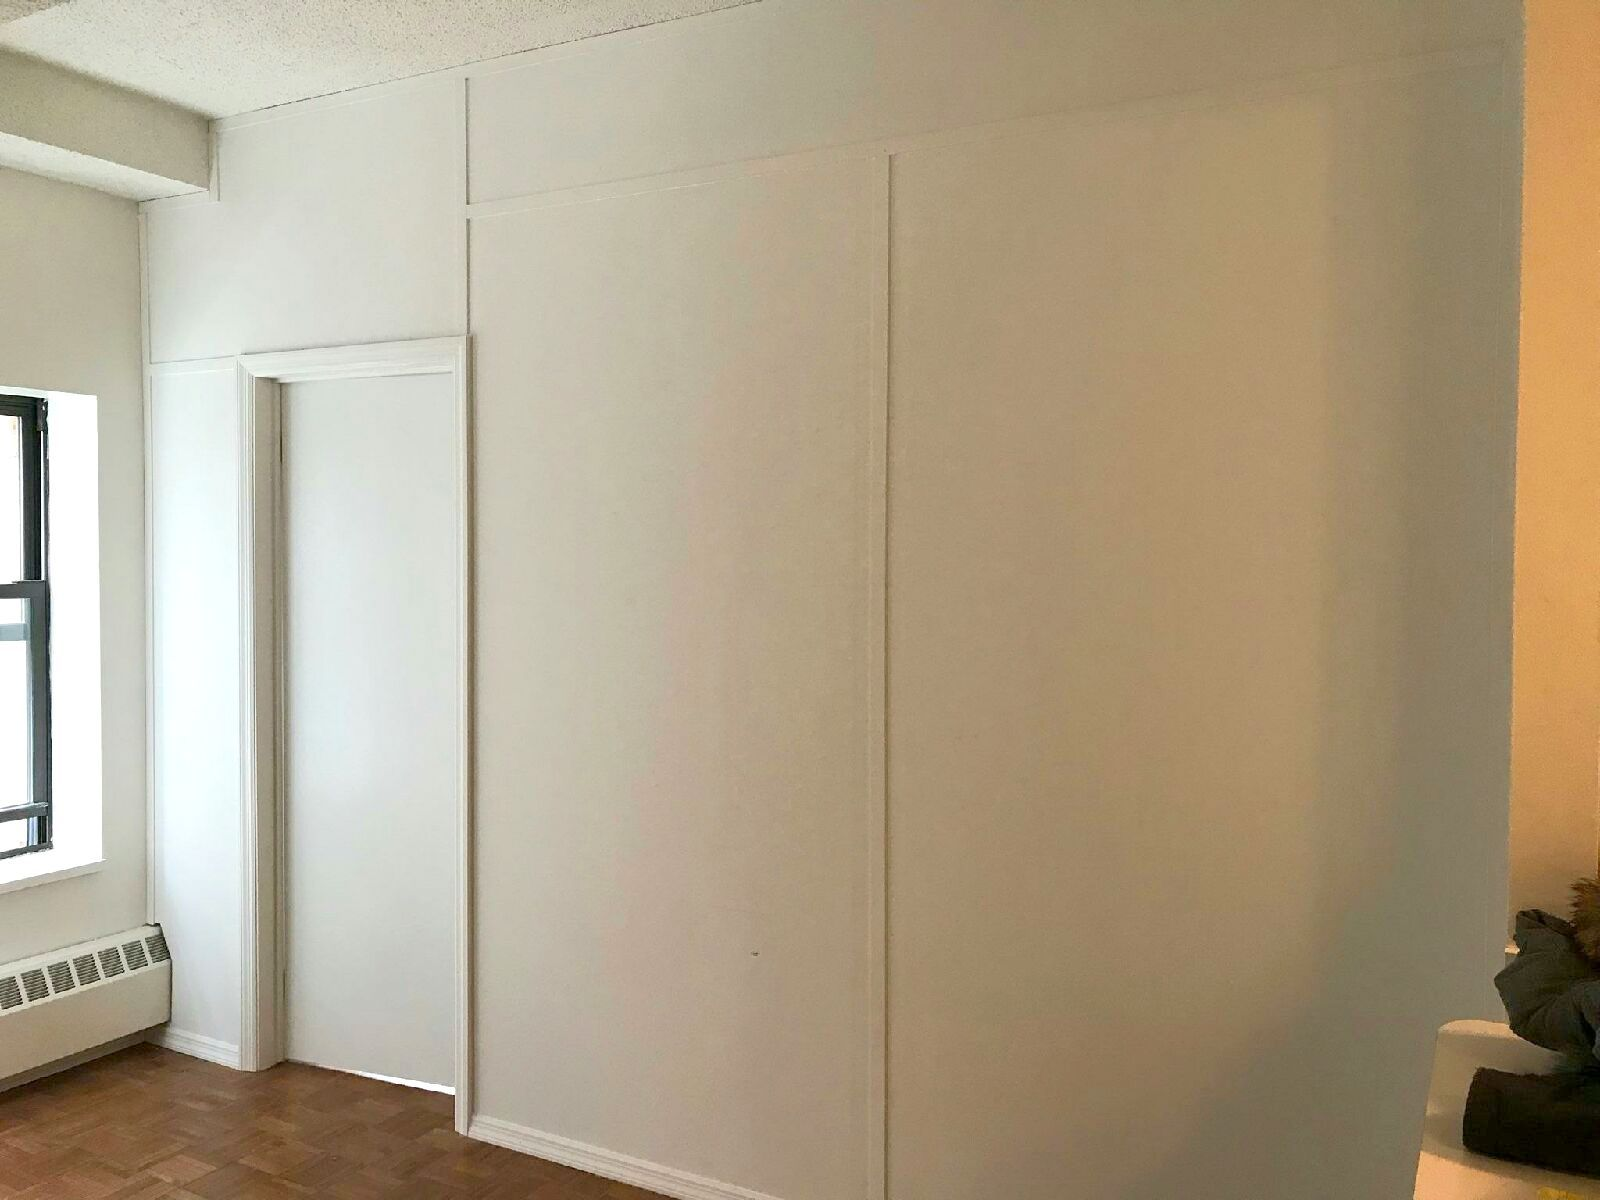 Floor To Ceiling Temporary Wall With Door Call Us For All Your